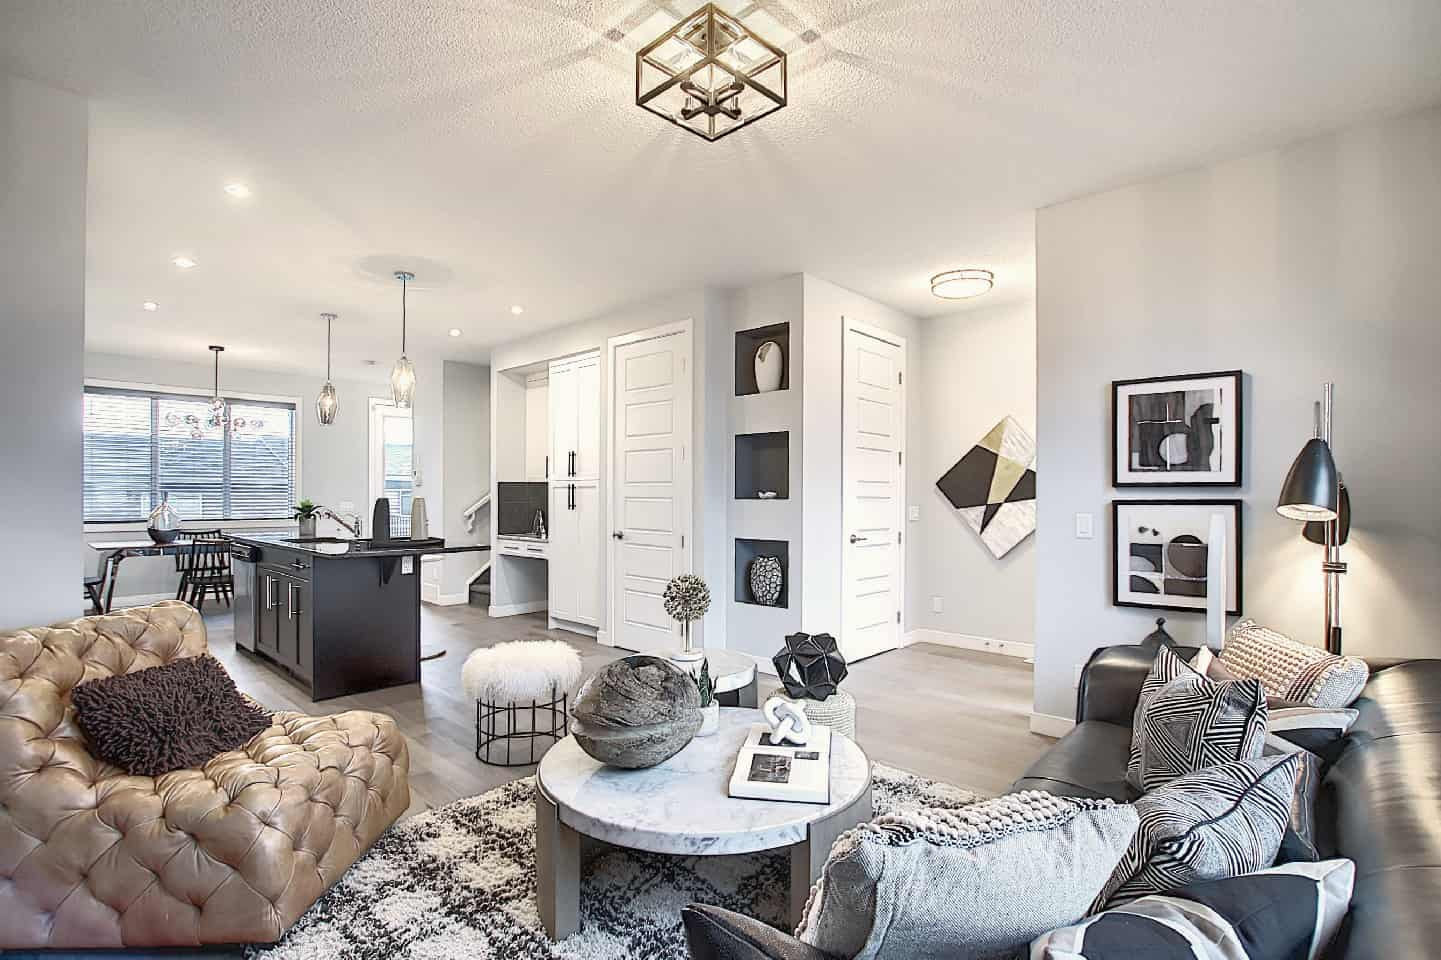 Quick possession homes Airdrie